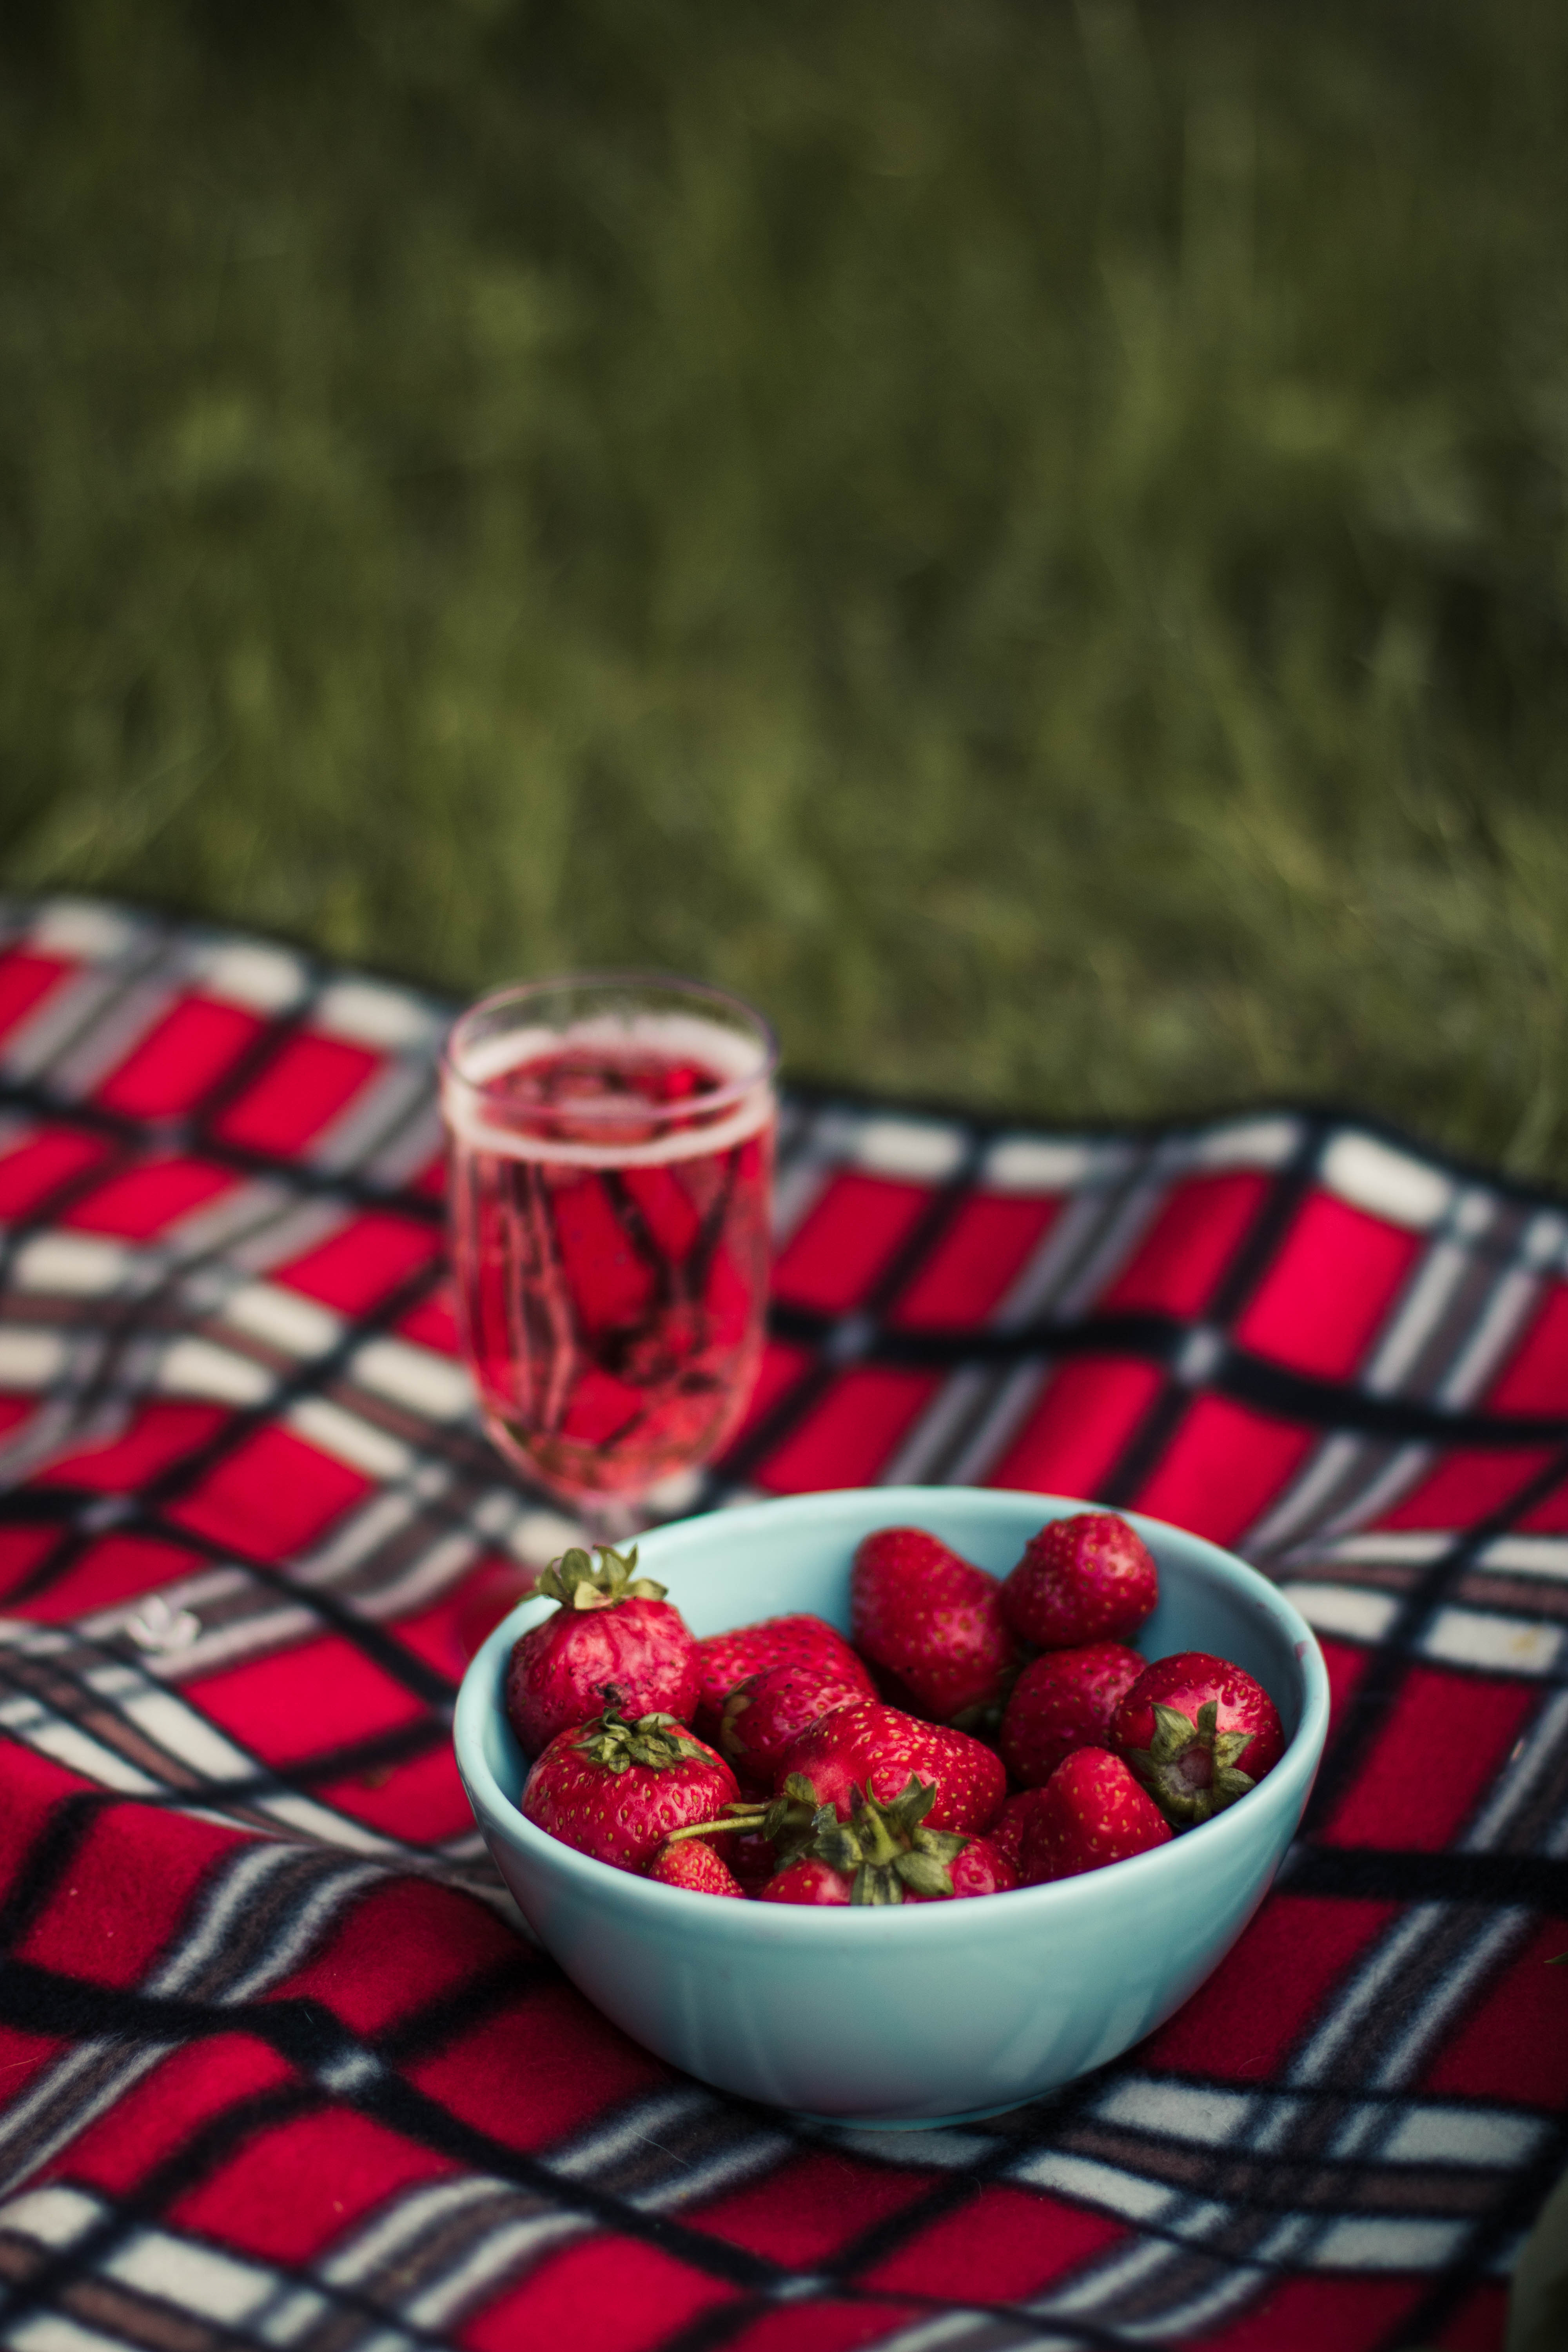 Red Cherry In Clear Glass Bowl 183 Free Stock Photo